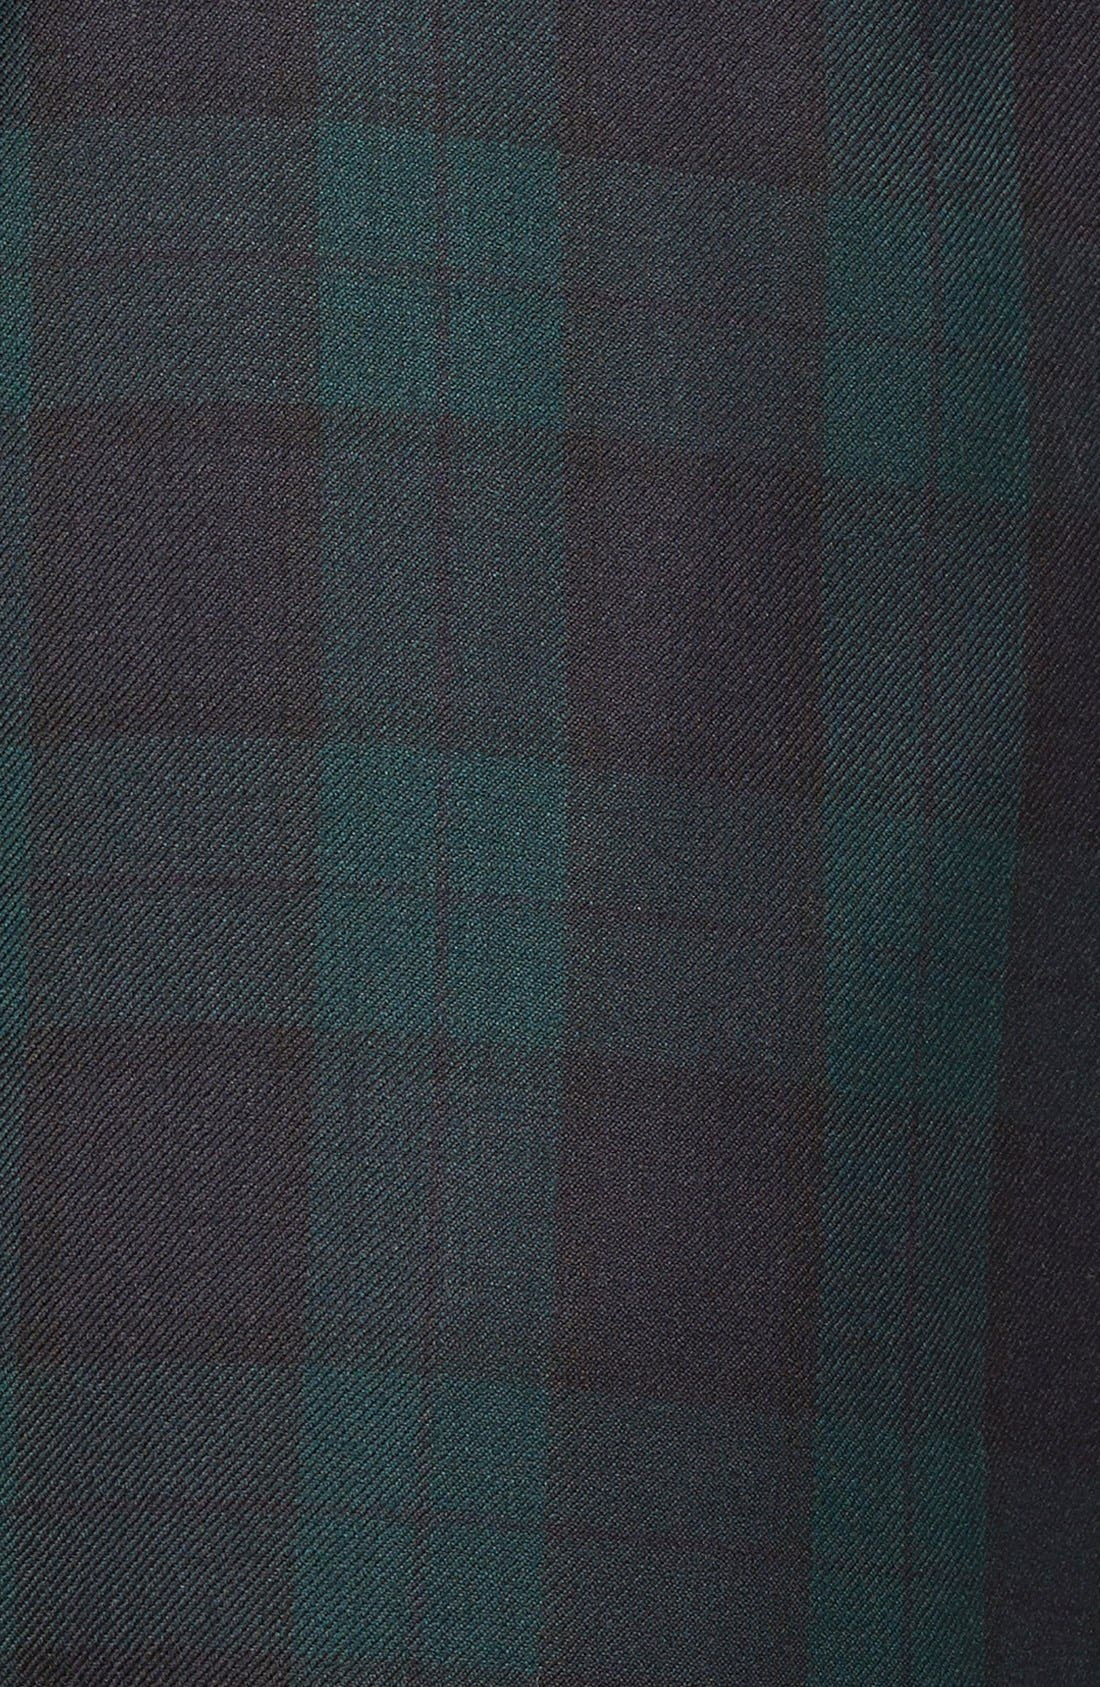 Flat Front Plaid Wool Trousers,                             Alternate thumbnail 2, color,                             GREEN